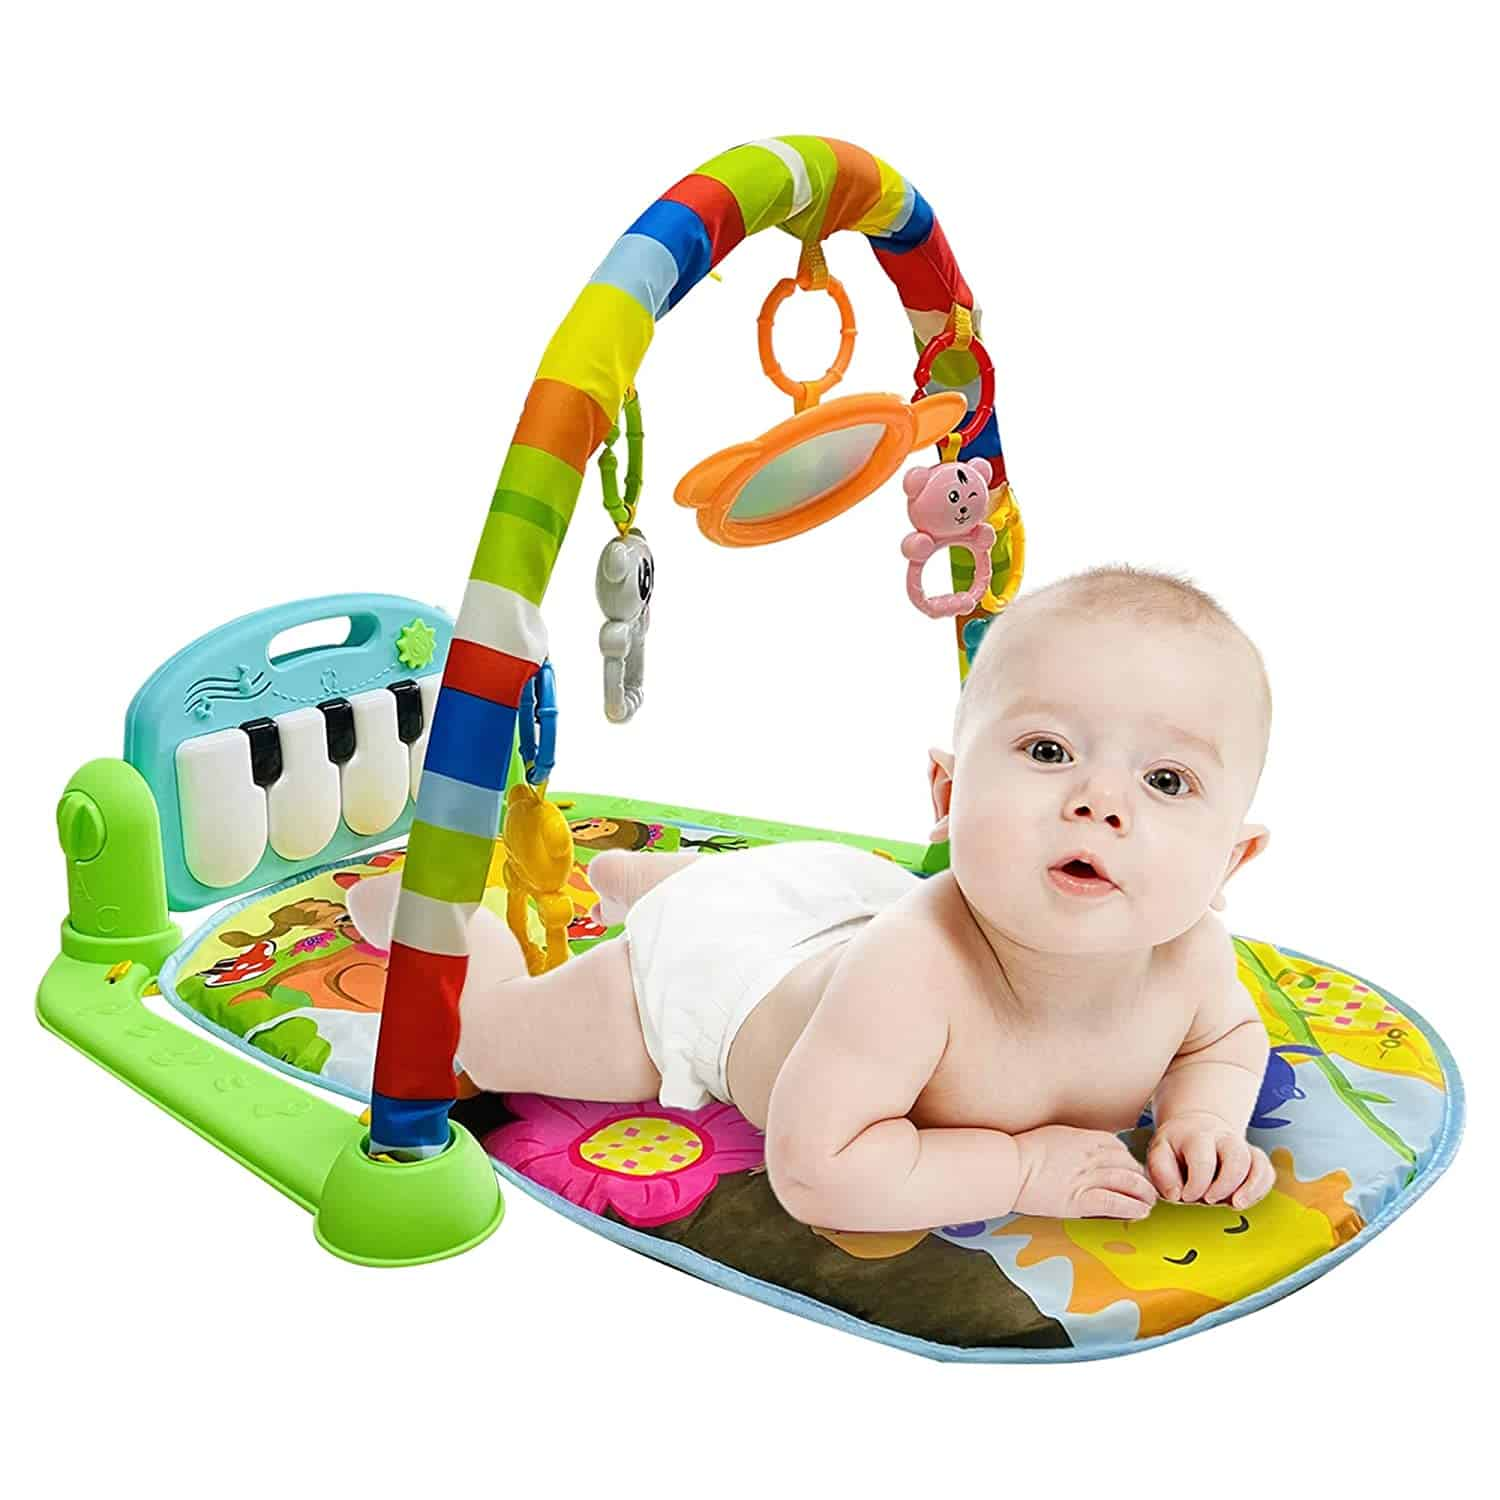 Best Baby Toys for 3 Month Olds